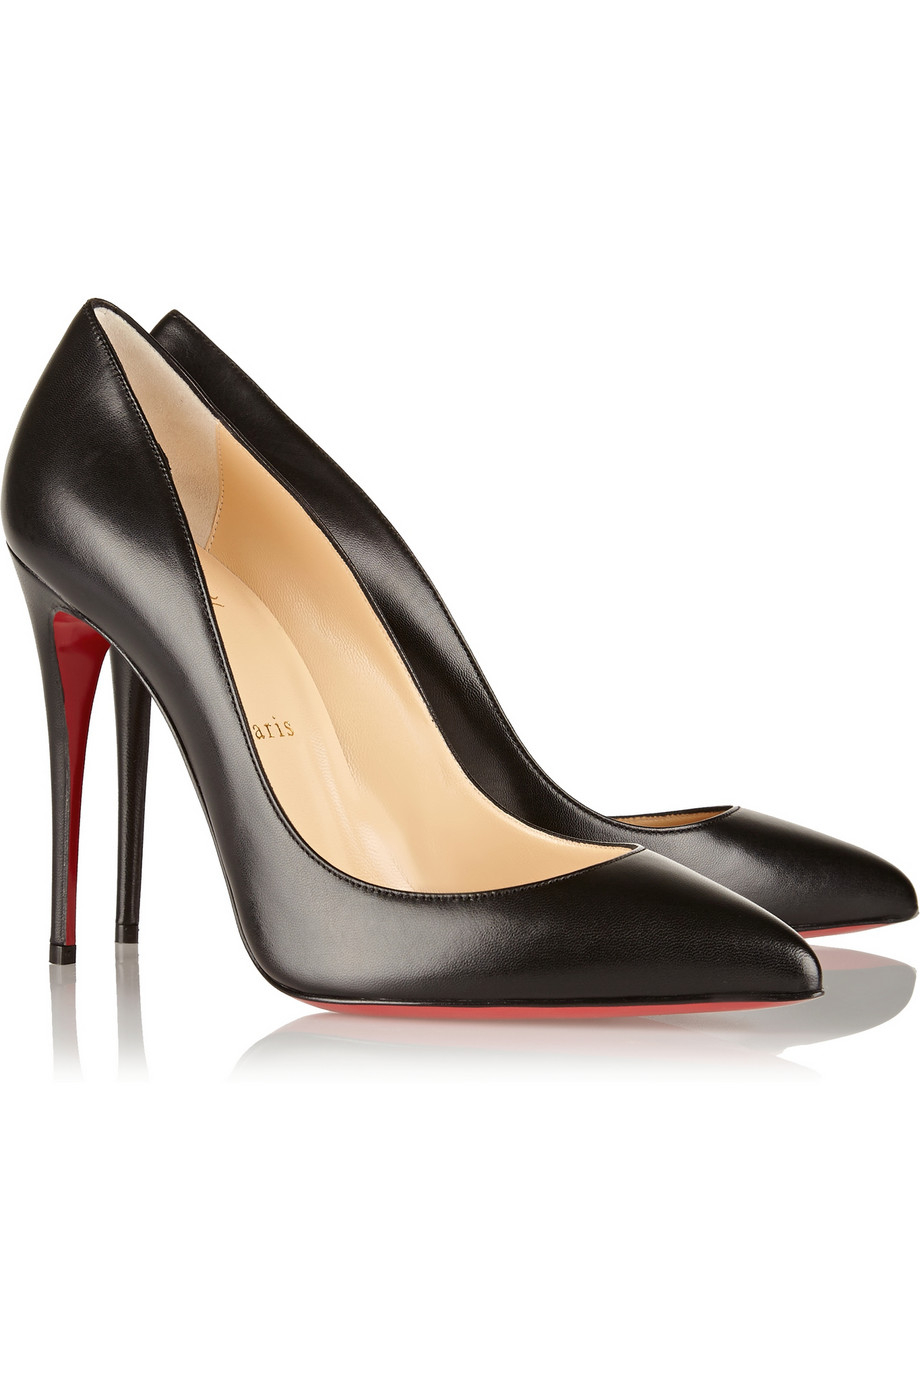 promo code 74fe2 582a6 Christian Louboutin Black Pigalle Follies 100 Leather Pumps